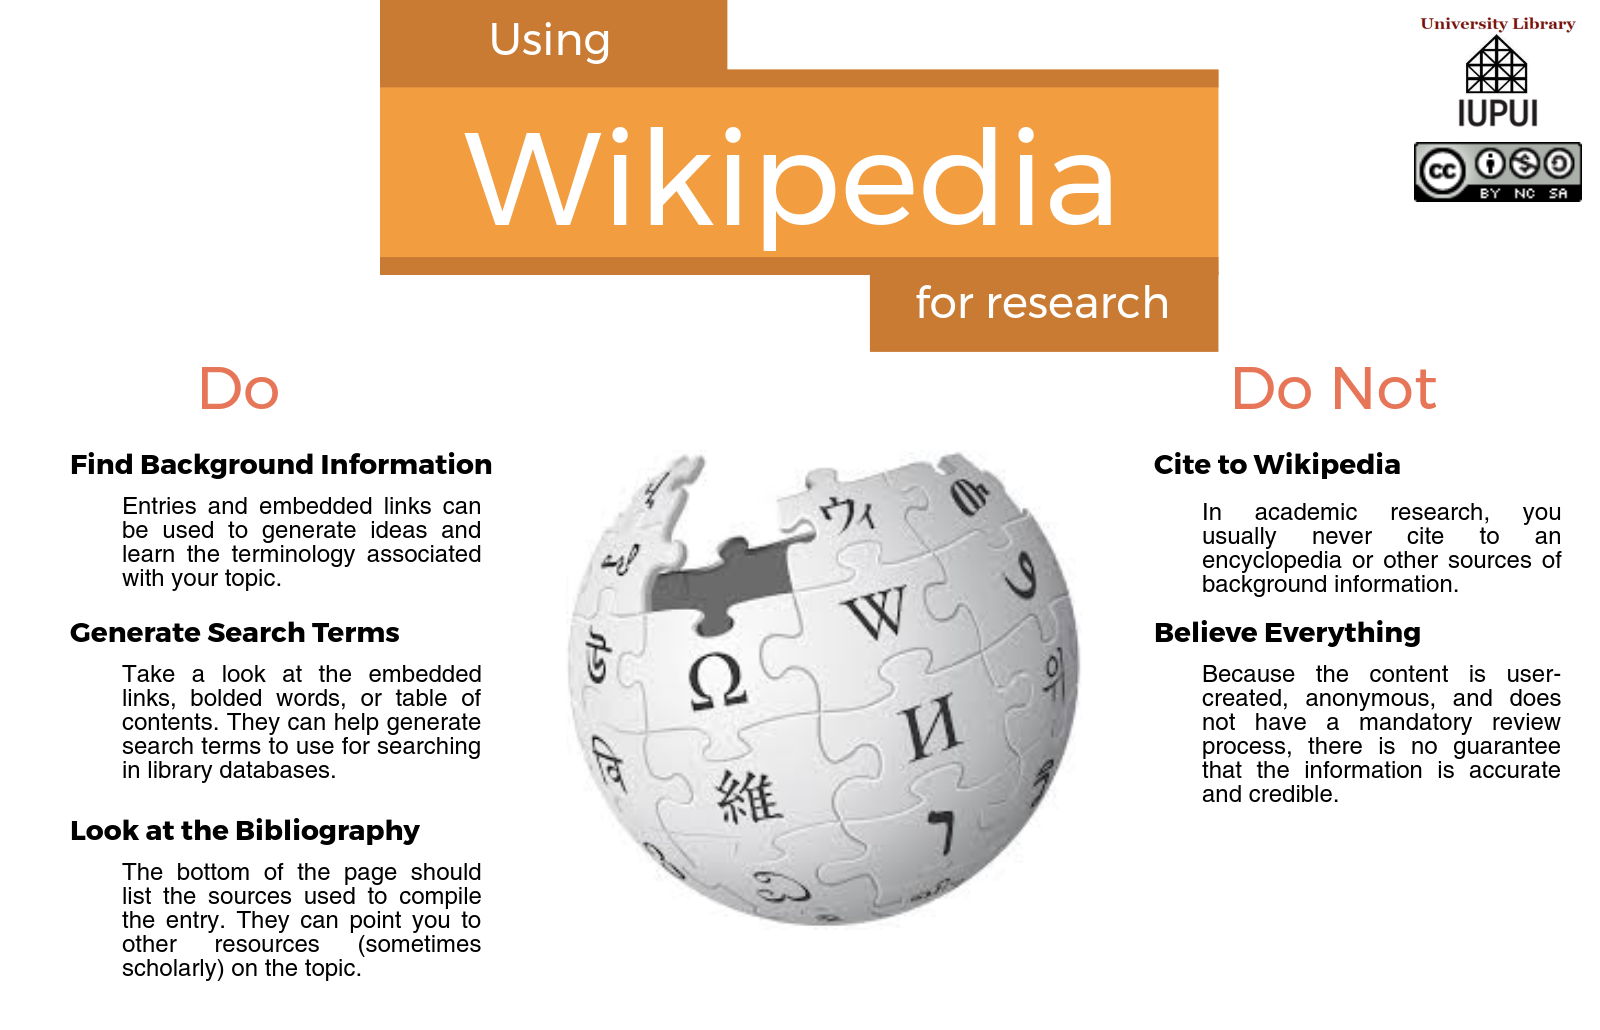 Using Wikipedia for Research